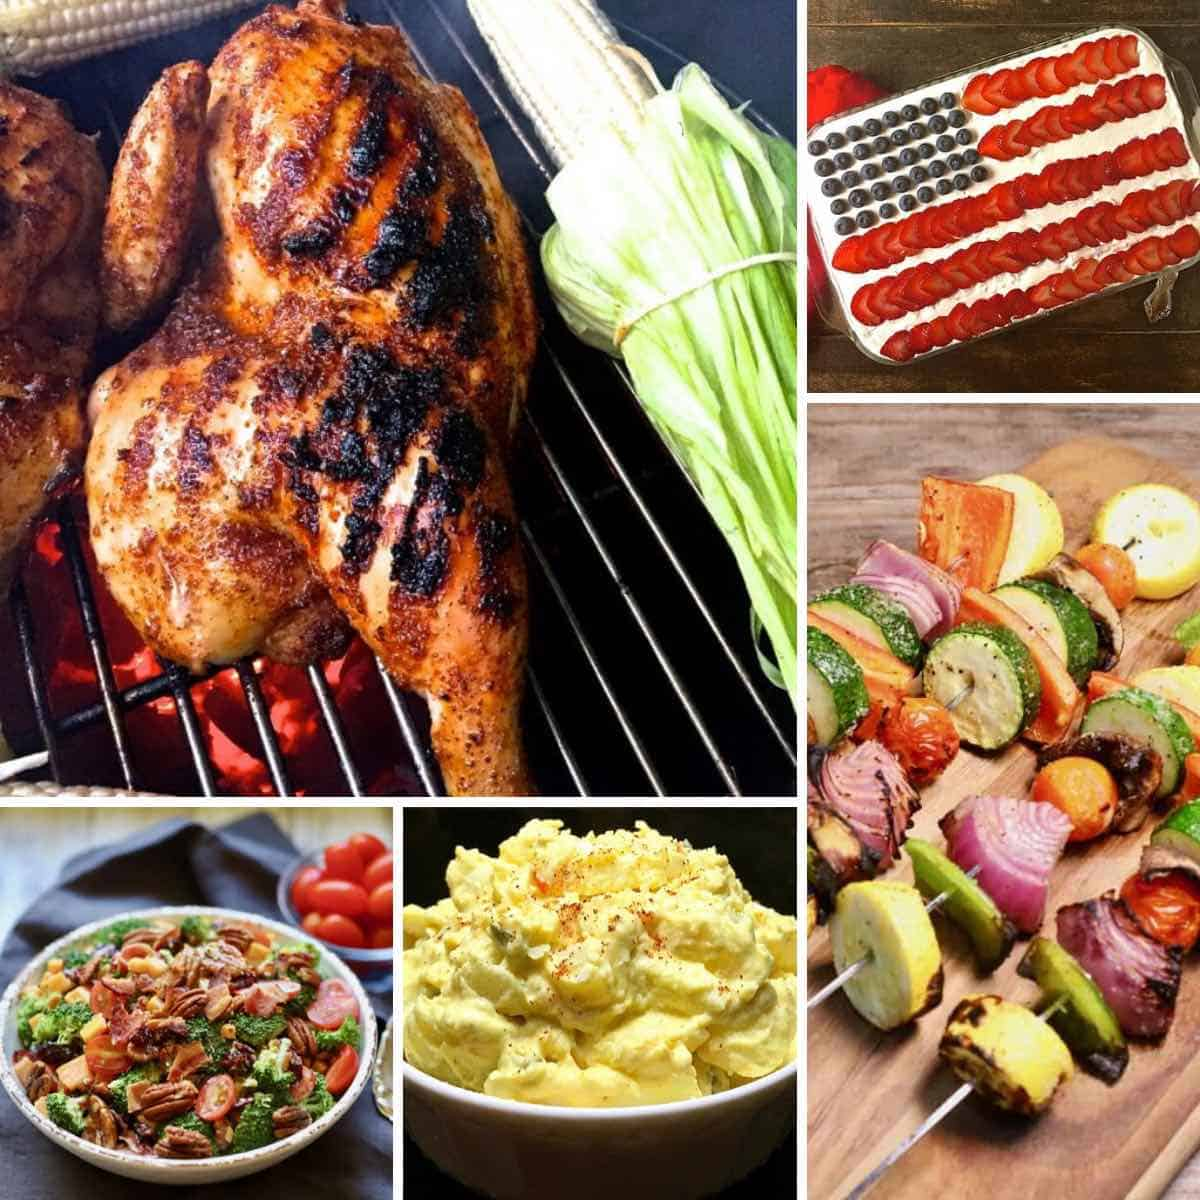 A college of images including grilled chicken, potato salad and an American Flag cake.